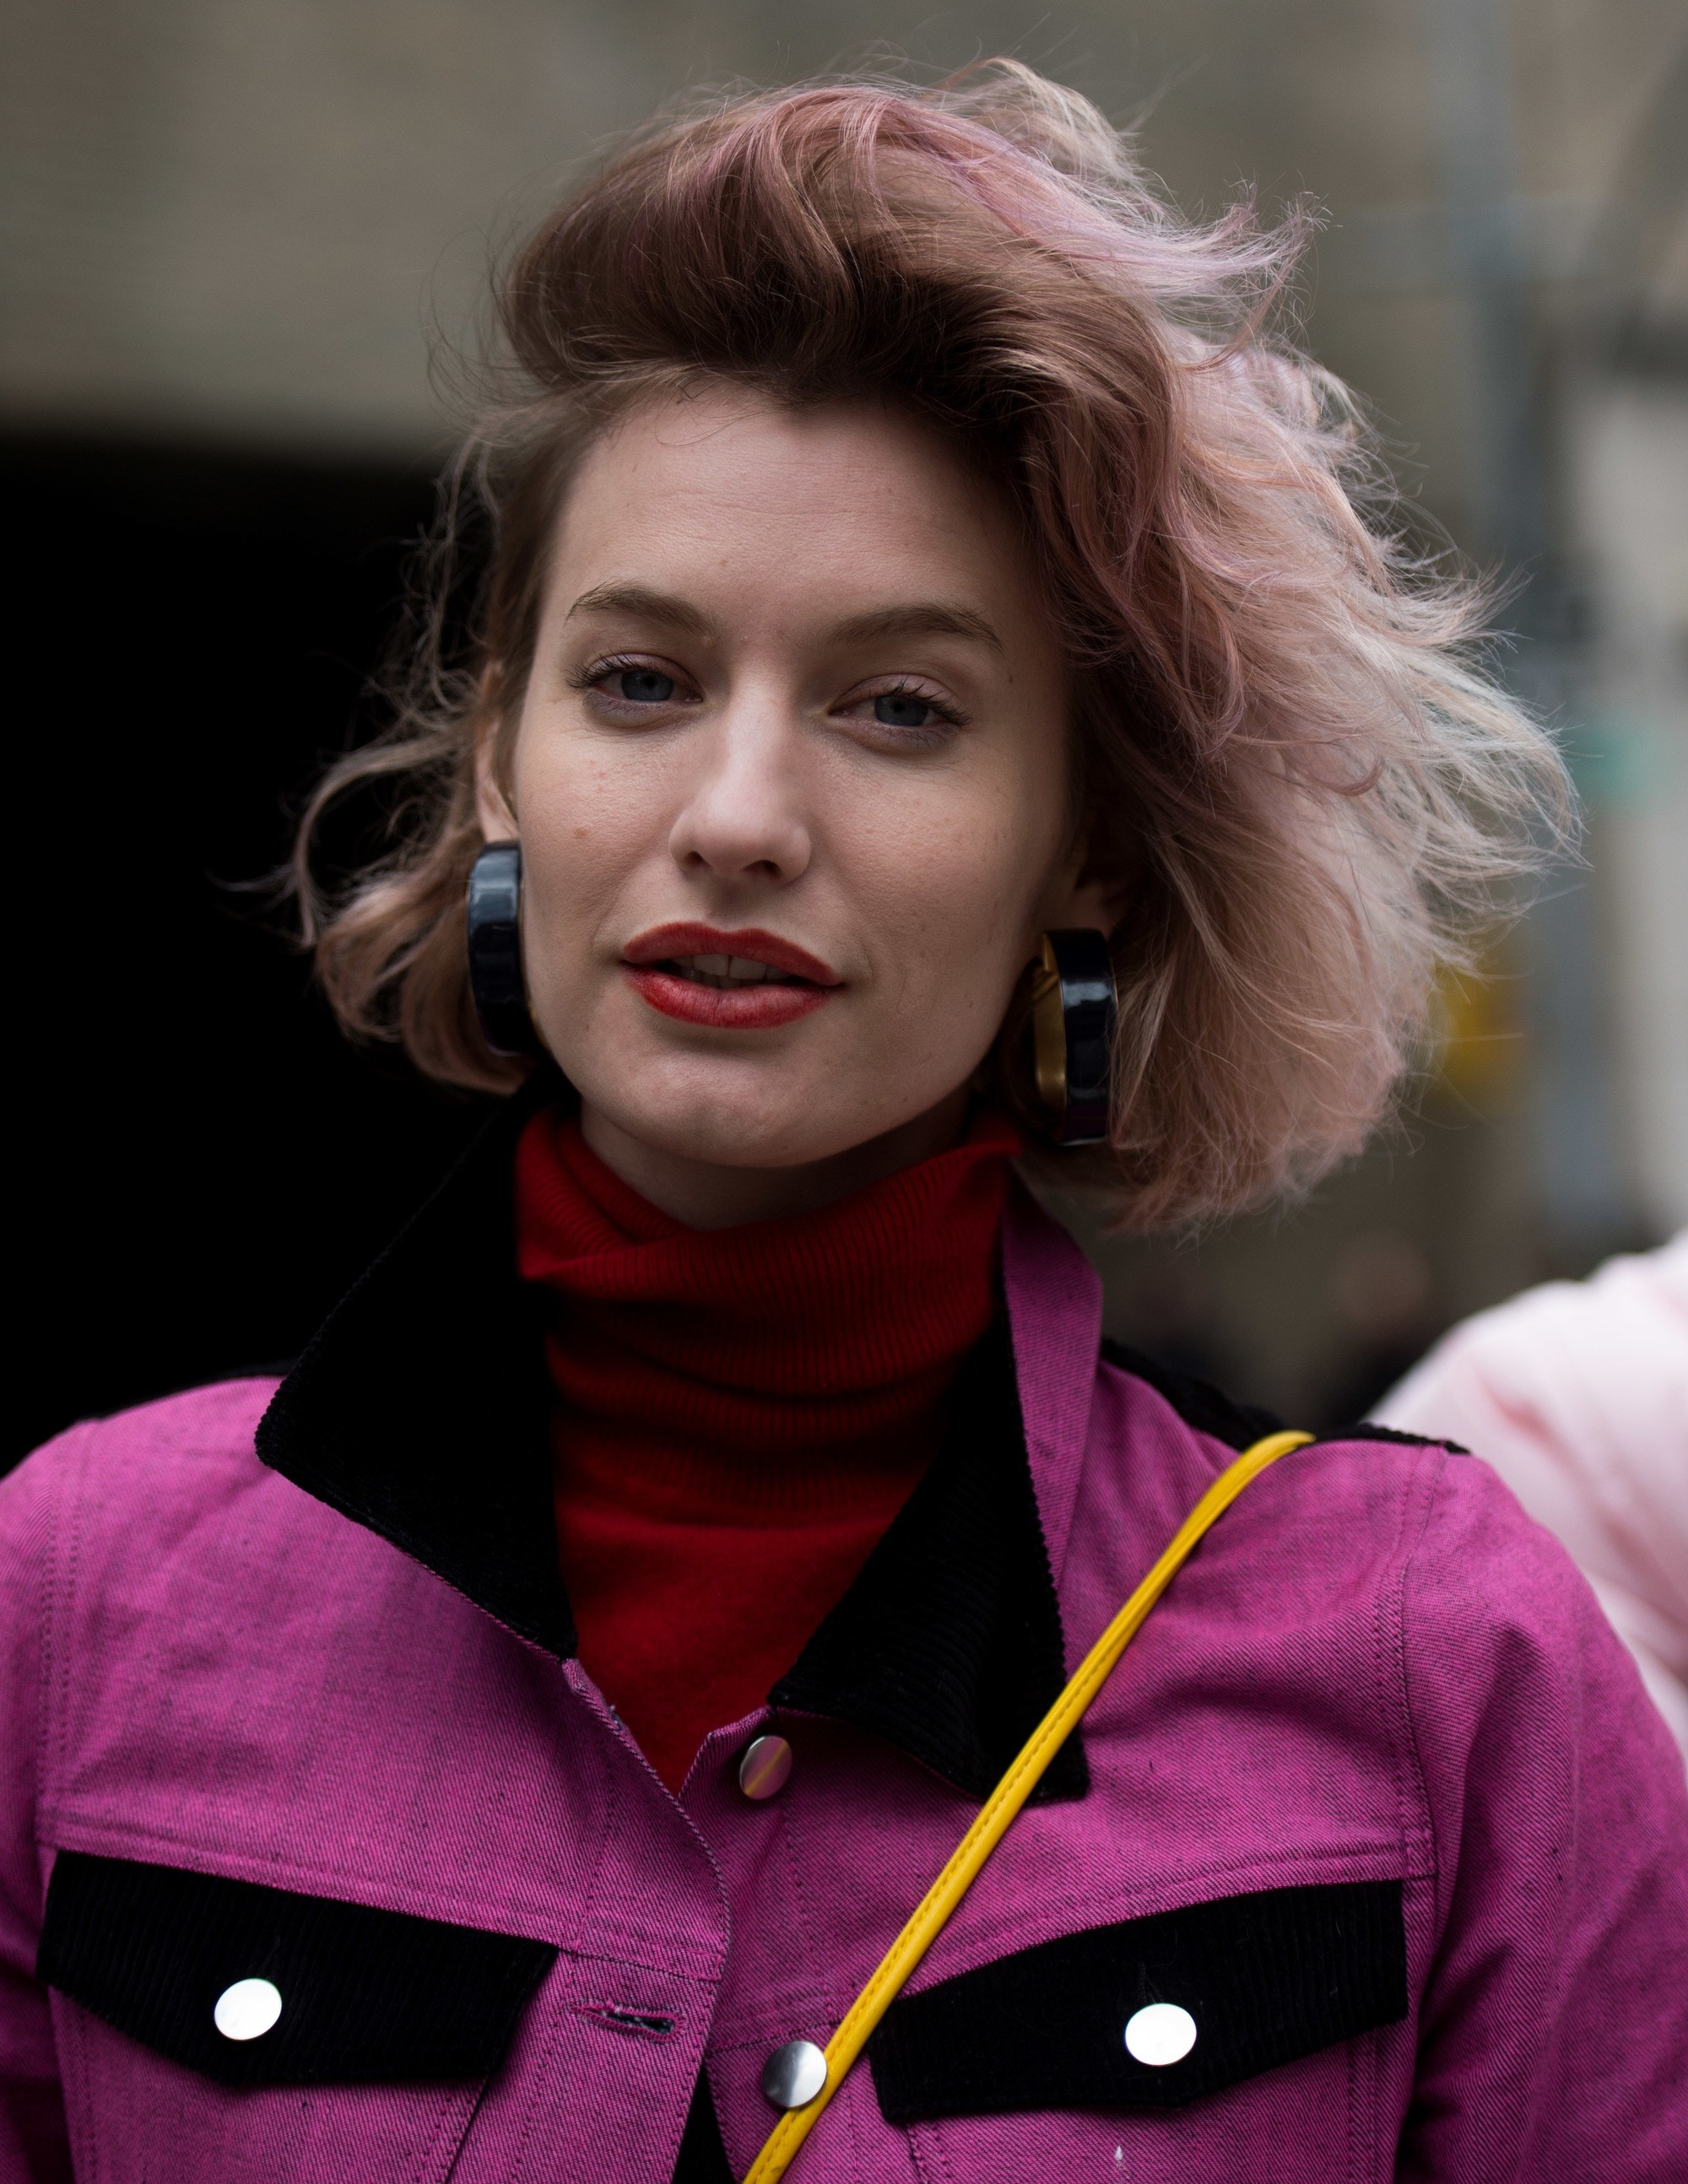 Pink ombre hair: Street style shot of a woman with light brown and pink ombre hair, wearing a red roll neck top and a pink jacket